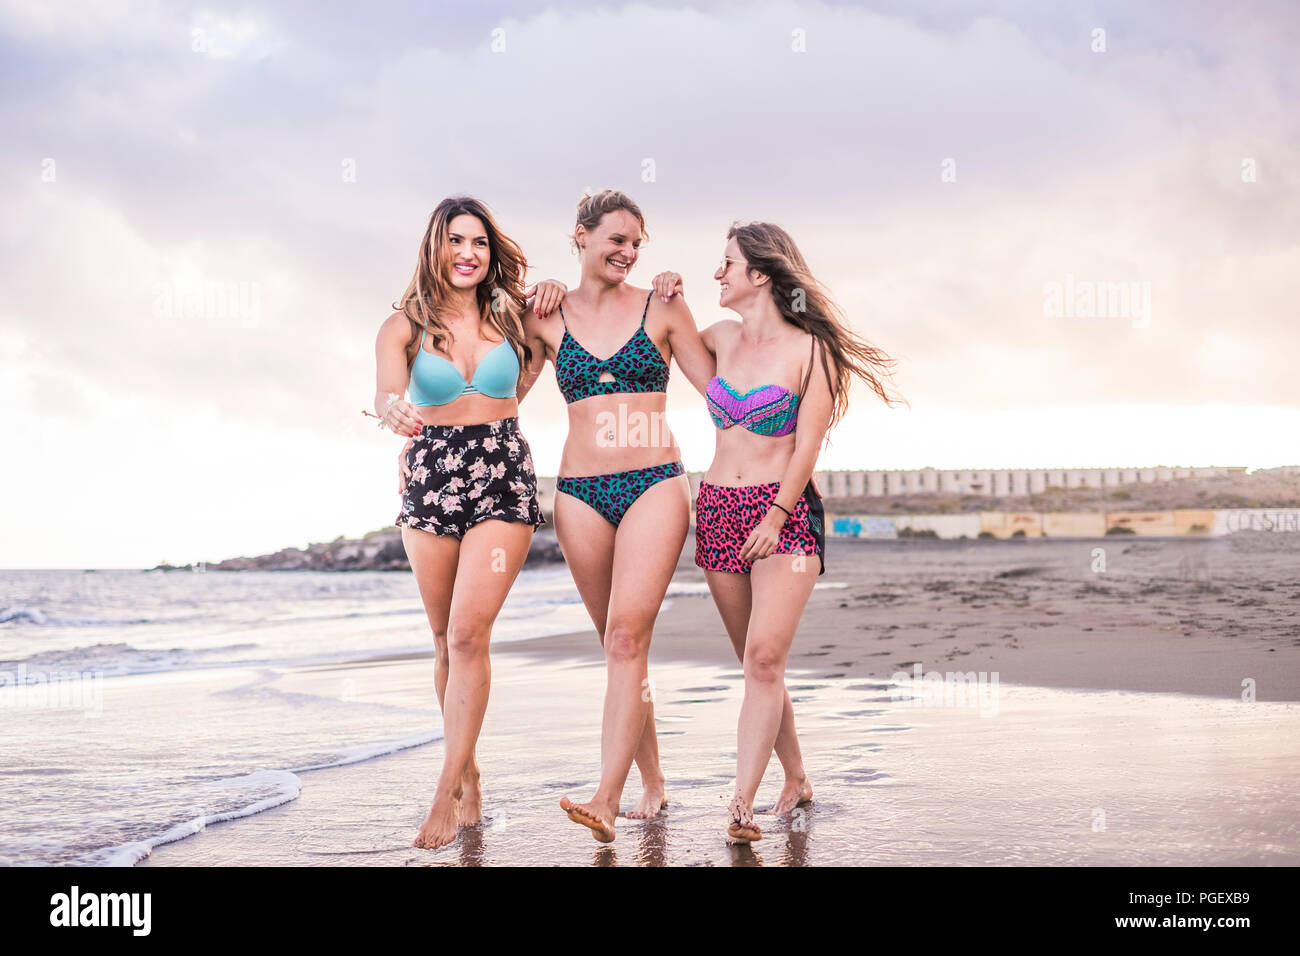 Portrait of three young female friends walking on the sea shore looking at camera laughing. Happy people enjoying vacation and seaside tropical beach  - Stock Image